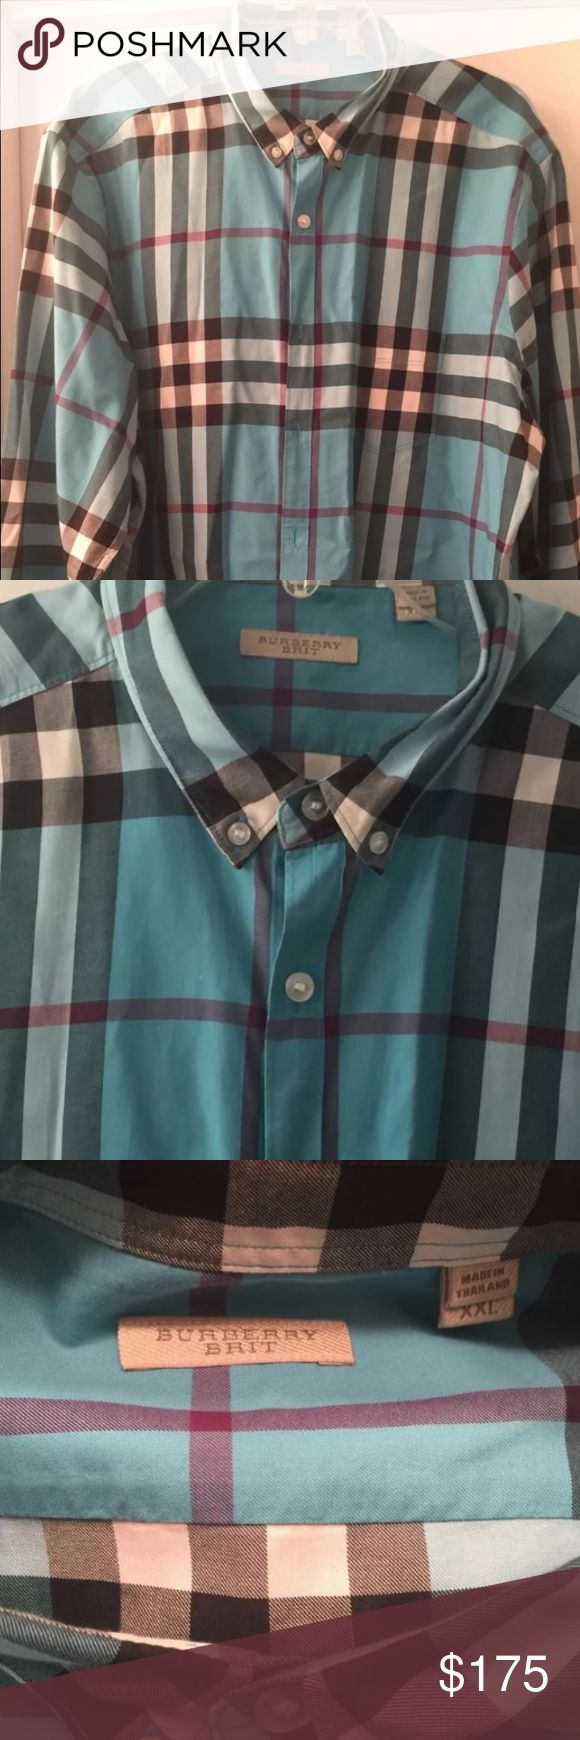 New authentic burberry shirt XXL New without tags never worn authentic burberry shirt for men size xxl long sleeves green color 100% cotton Burberry Shirts Casual Button Down Shirts